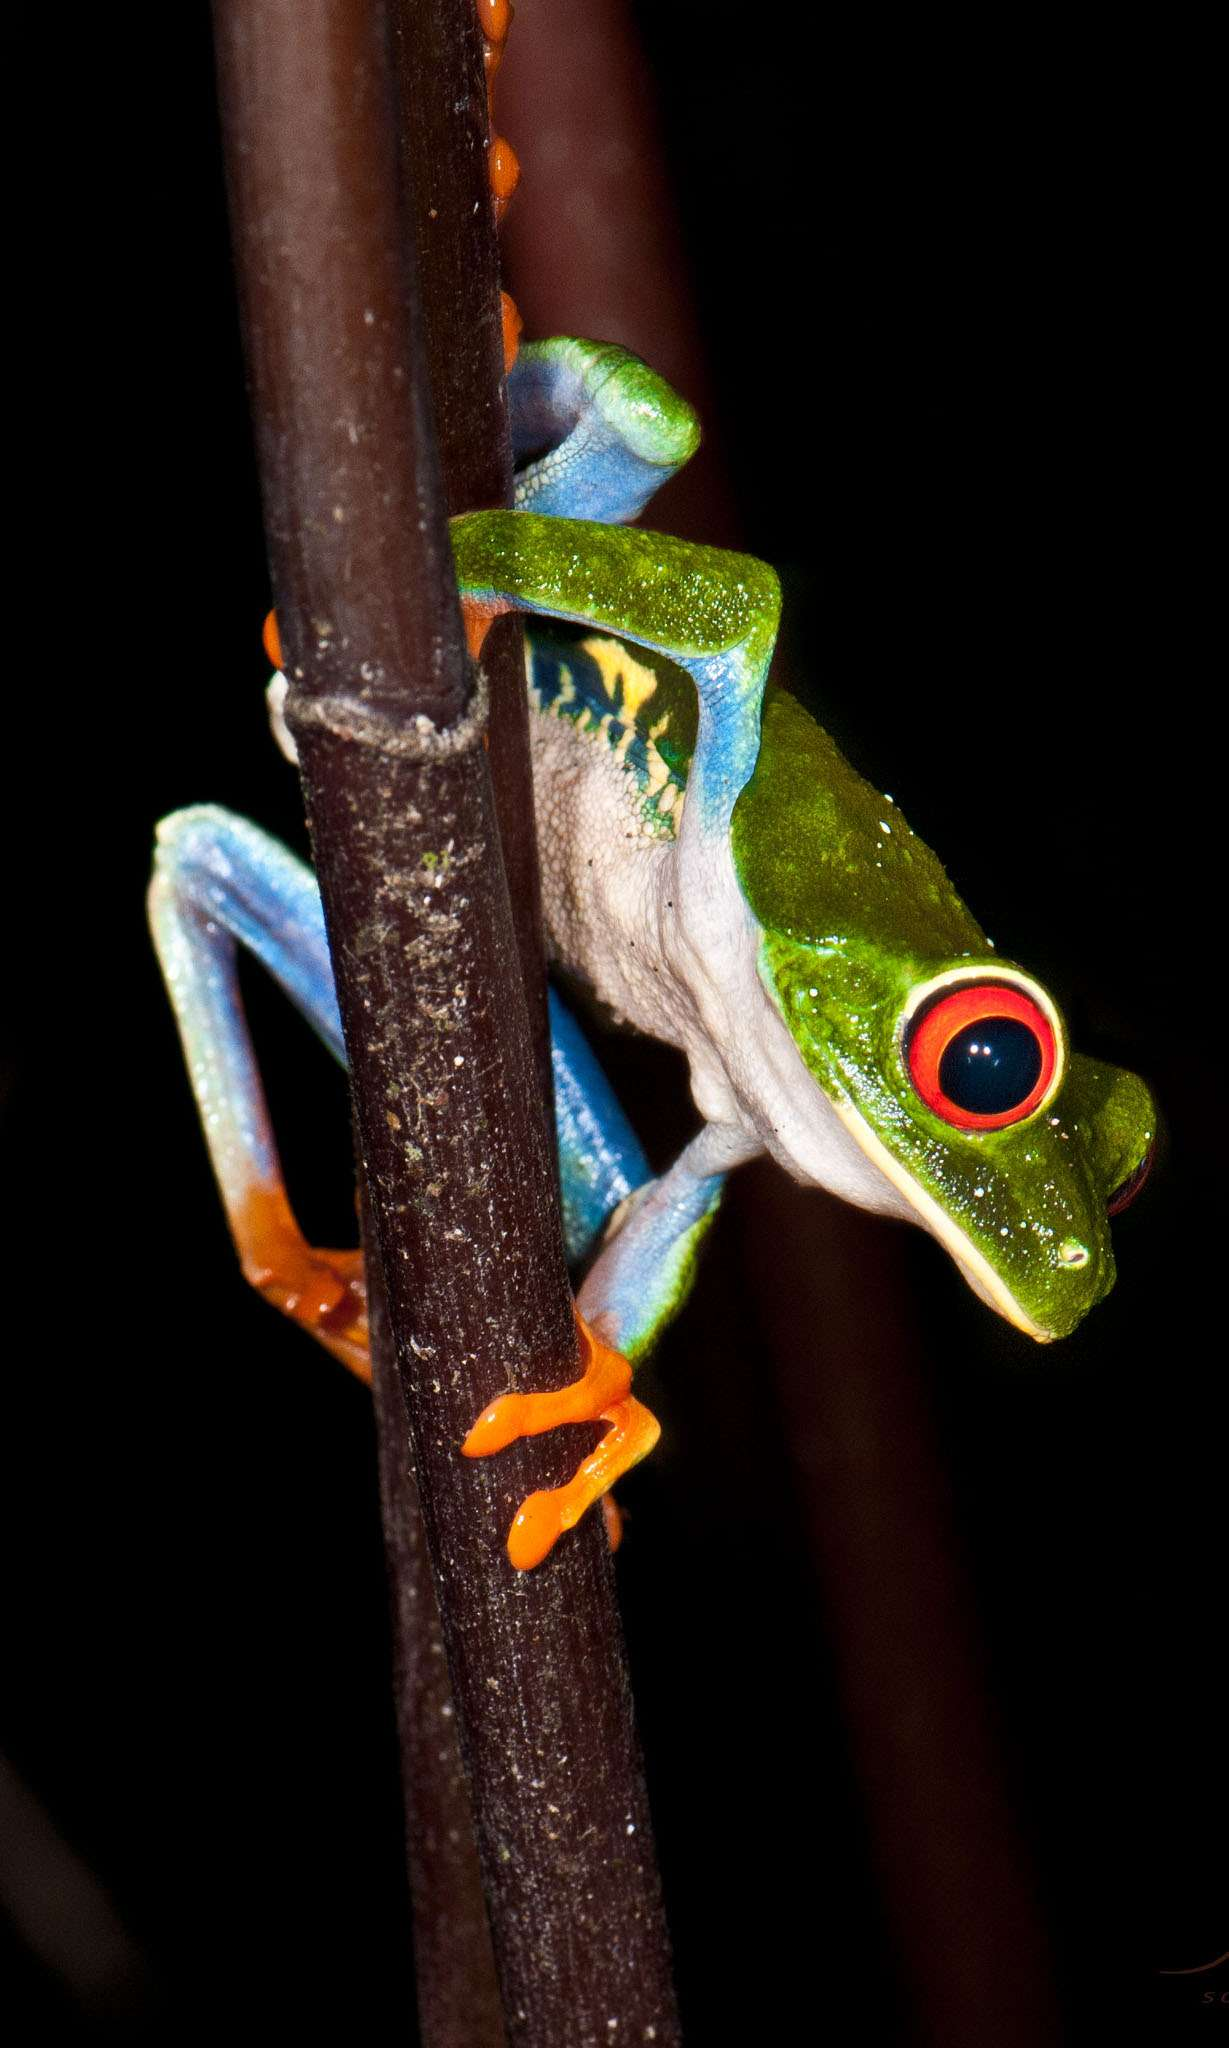 Who doesn't love these colorful tree frogs?!